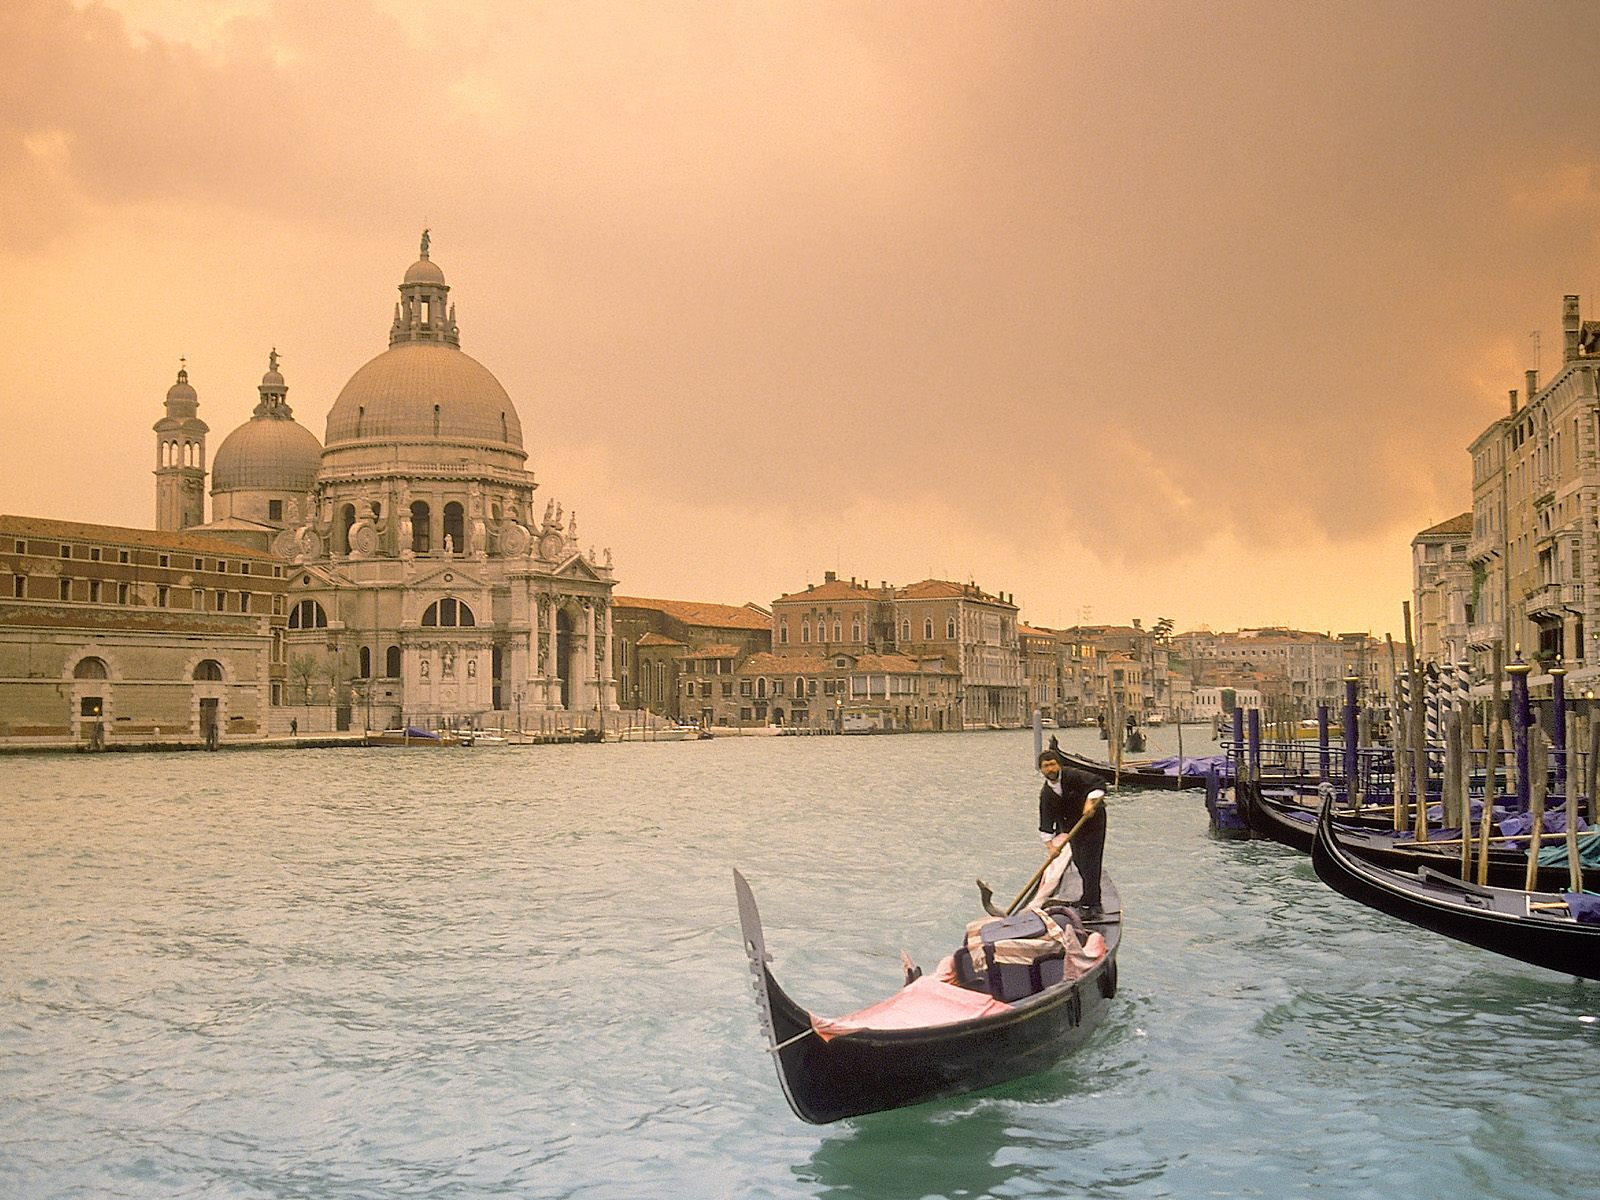 Grand Canal Venice Italy 1600 x 1200 Locality Photography 1600x1200